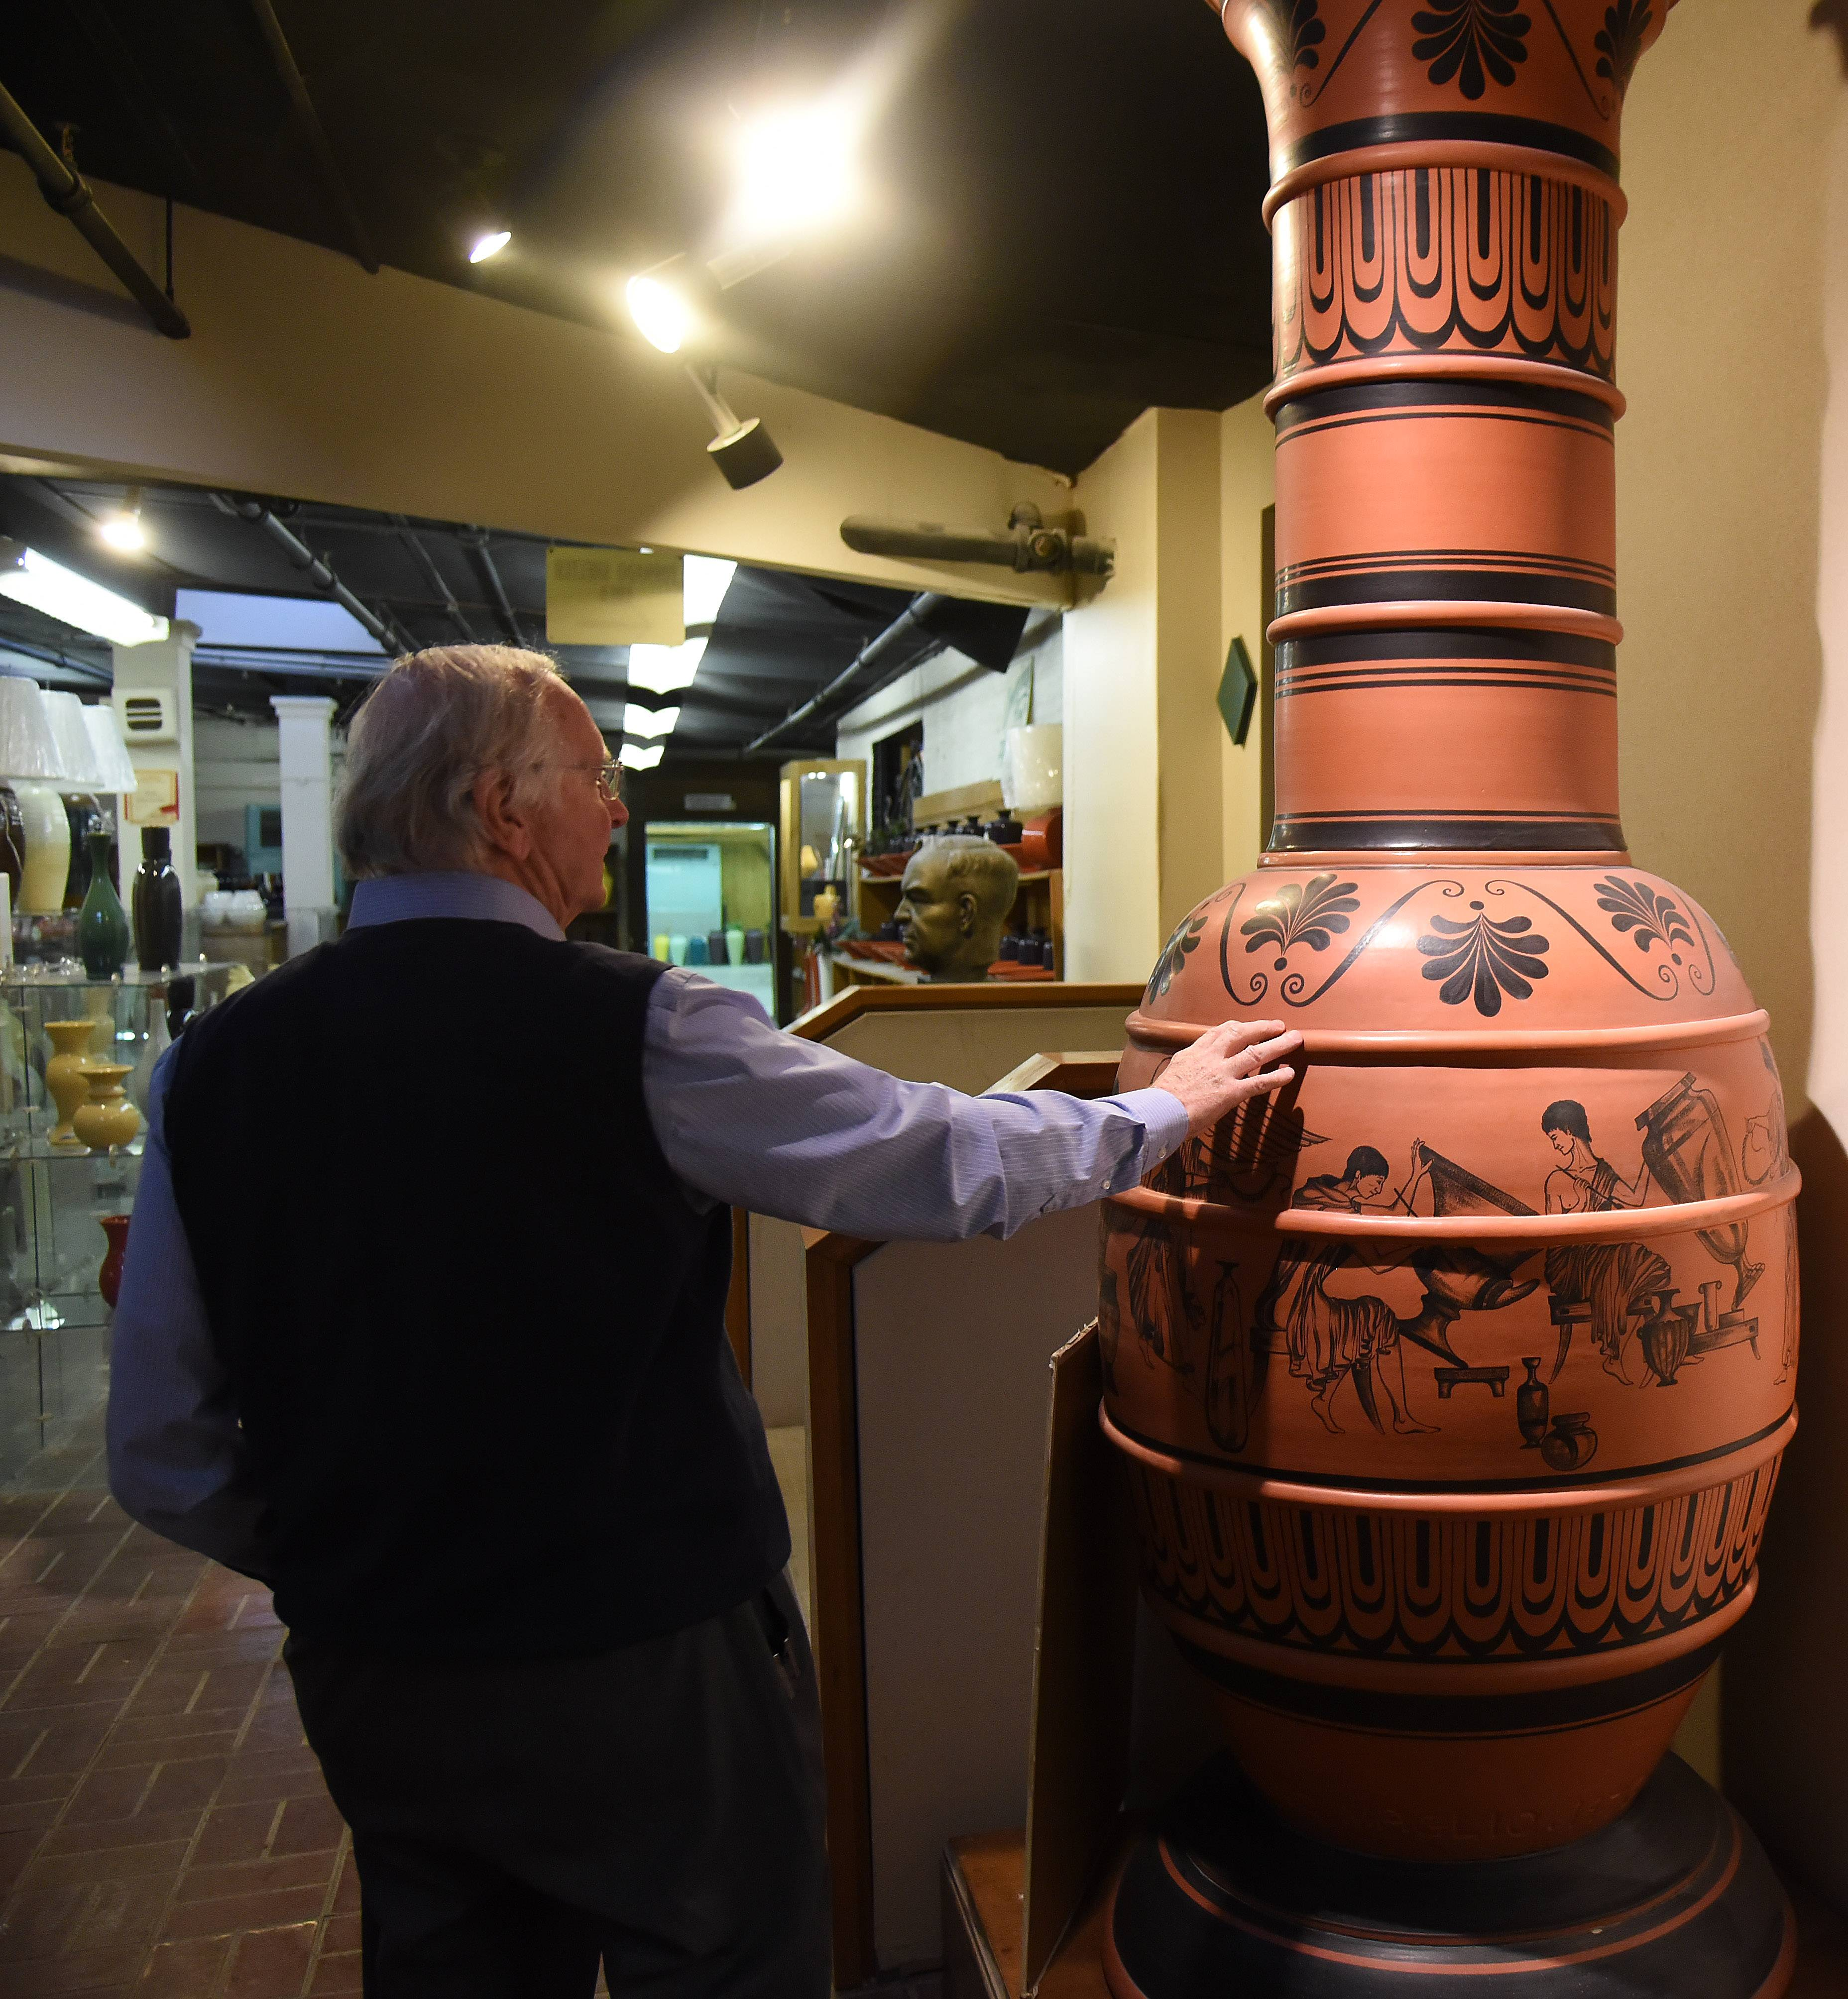 Craig Zachrich, chief operating officer of Haeger Potteries, shows off what was once the world's largest hand-thrown pot at their East Dundee store shortly after the 145-year-old company announced it was closing. The 92-inch-tall vase is up for auction next month and is expected to be sold for $6,000 to $8,000.